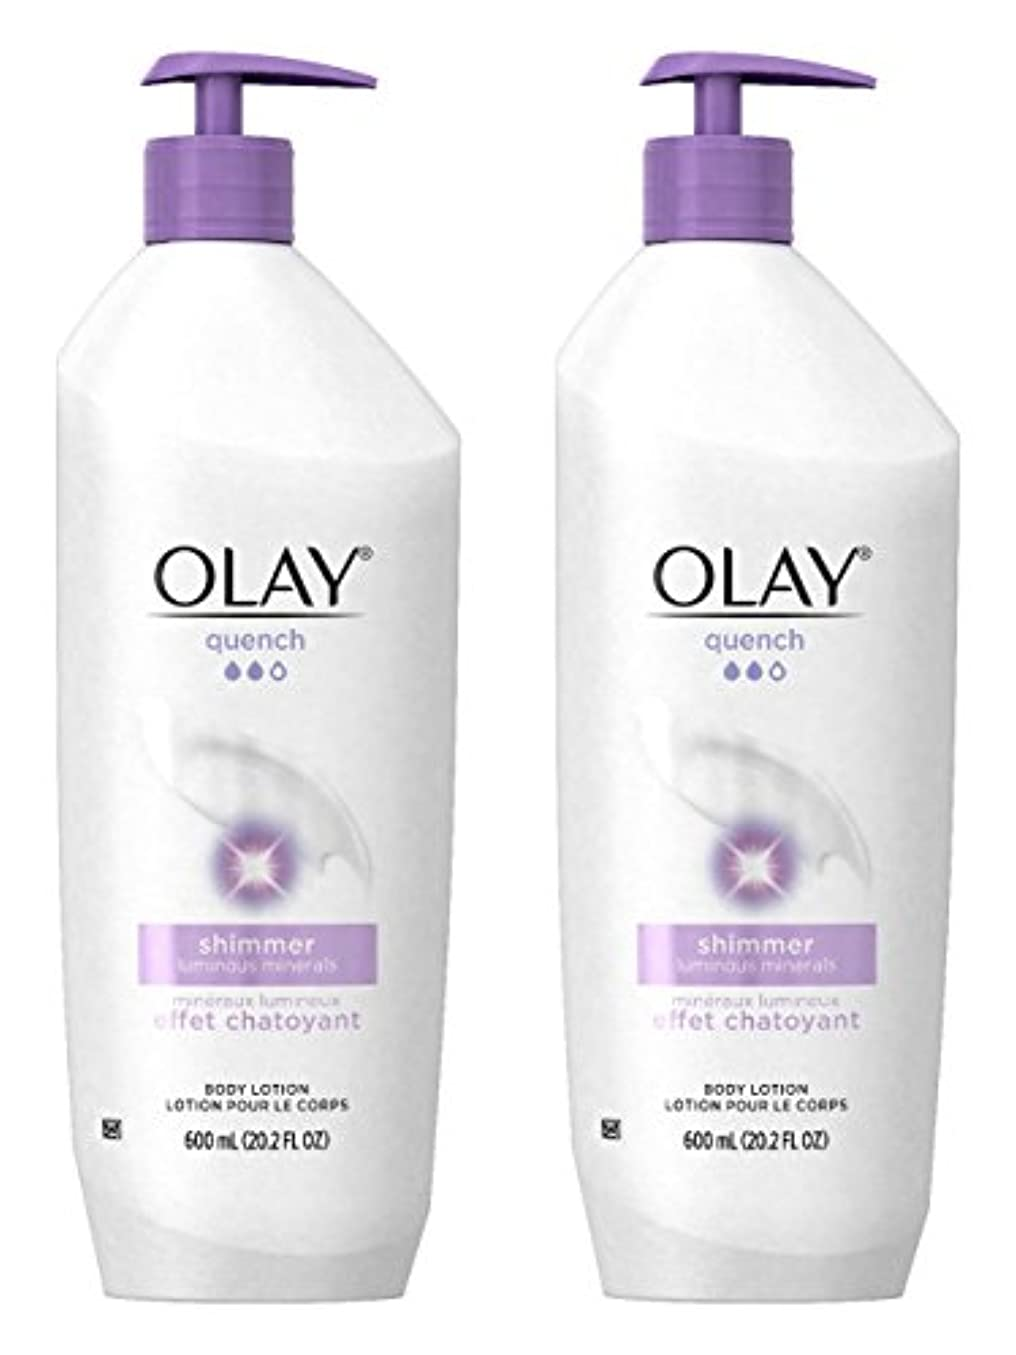 予測注入する昇るOlay Quench Daily Lotion Plus Shimmer Body Lotion 20.2 Fl Oz (Pack of 2) by Olay [並行輸入品]